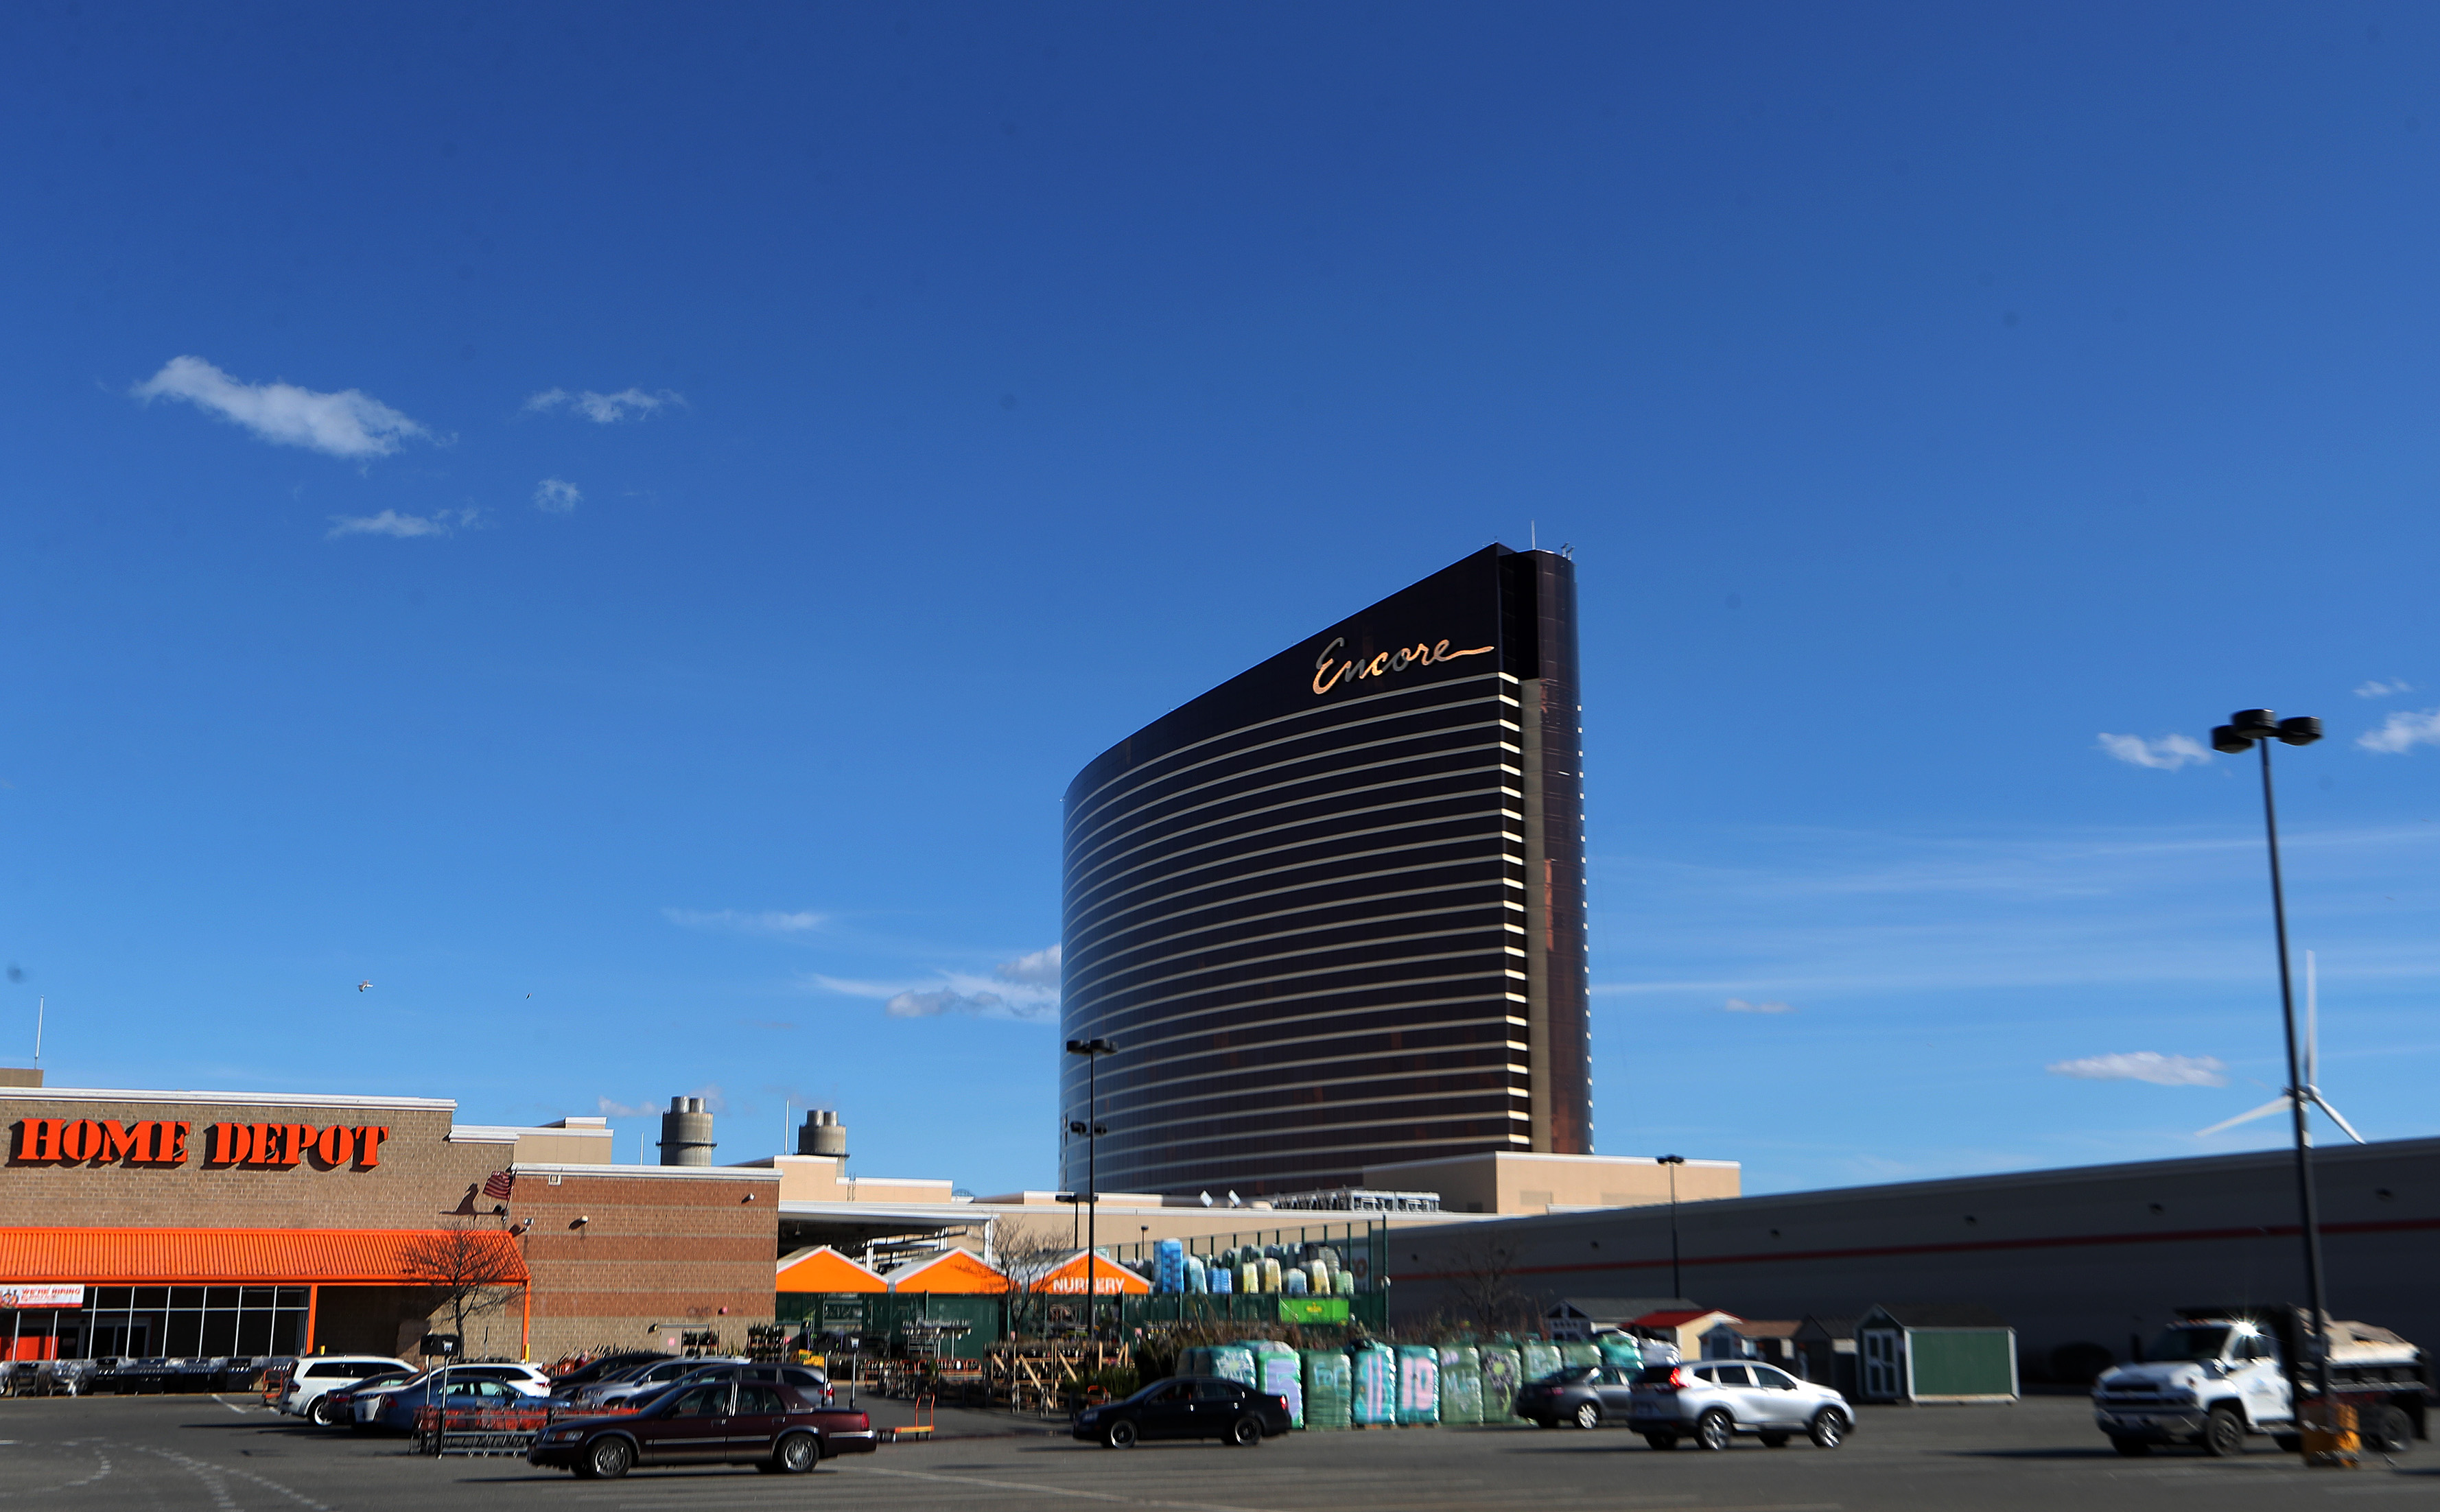 A large, rectangular, and curved building looming over a parking lot.